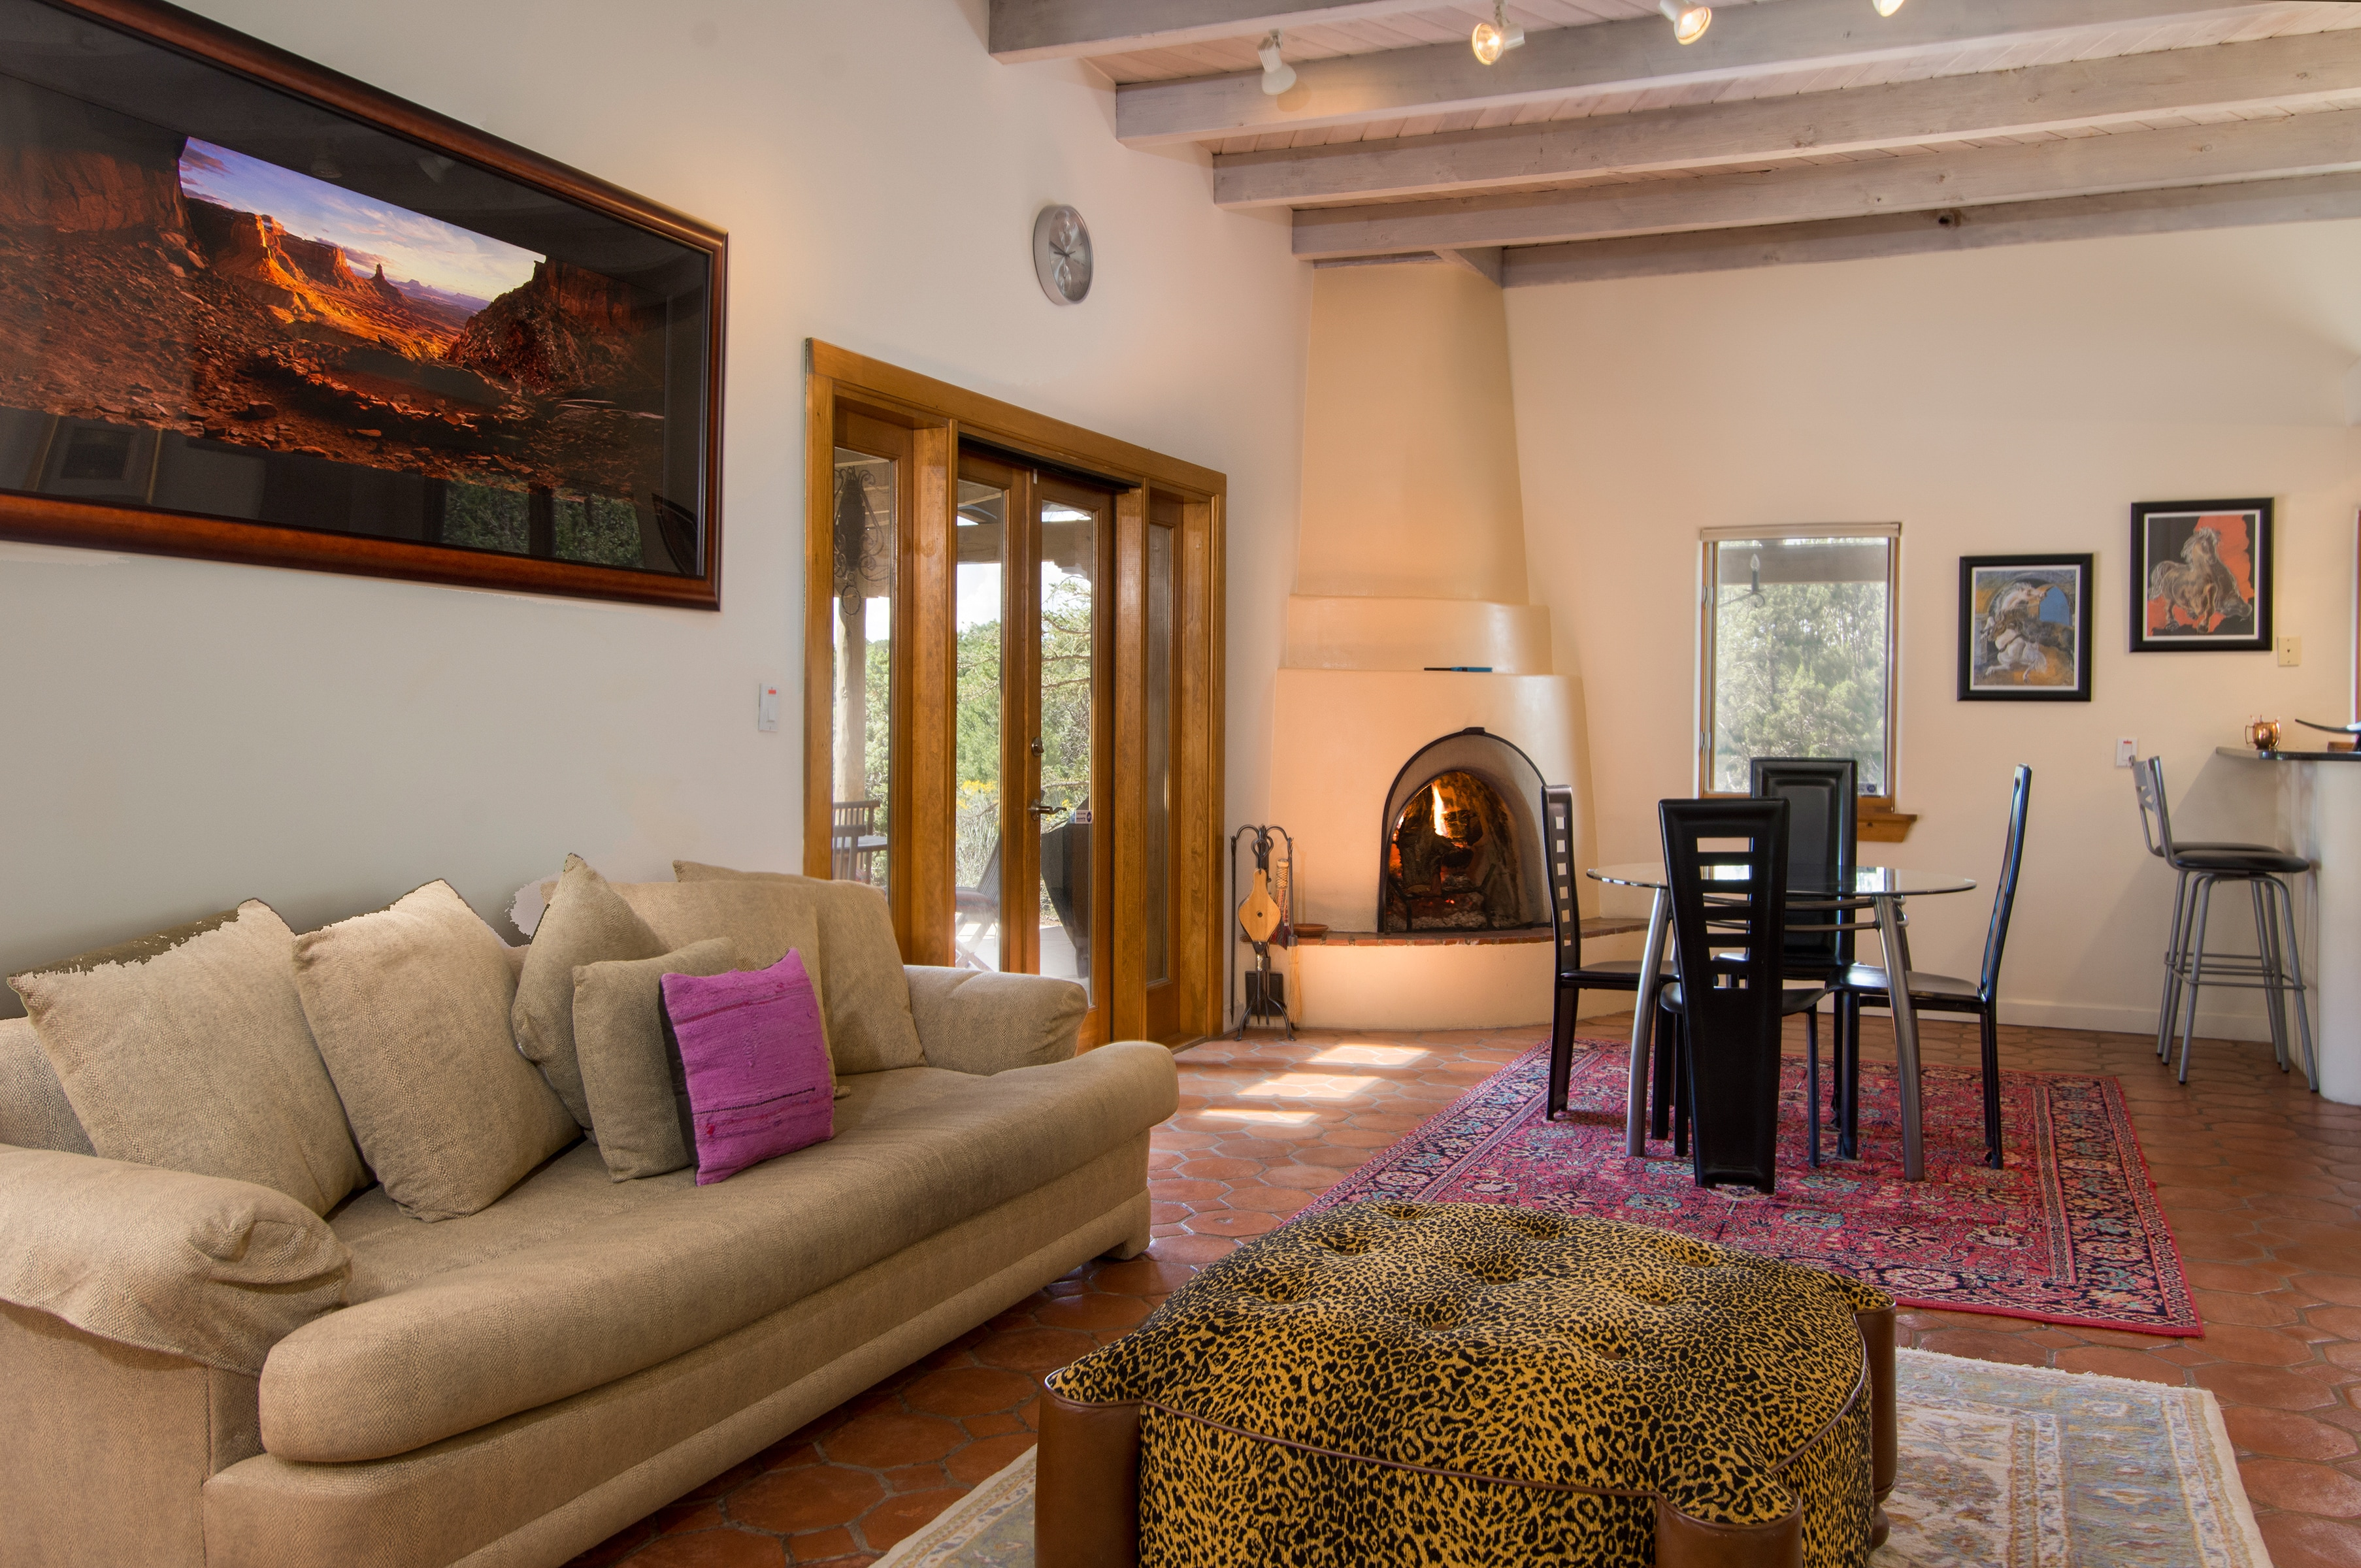 Welcome to Santa Fe! This magnificent home is professionally managed by TurnKey Vacation Rentals.